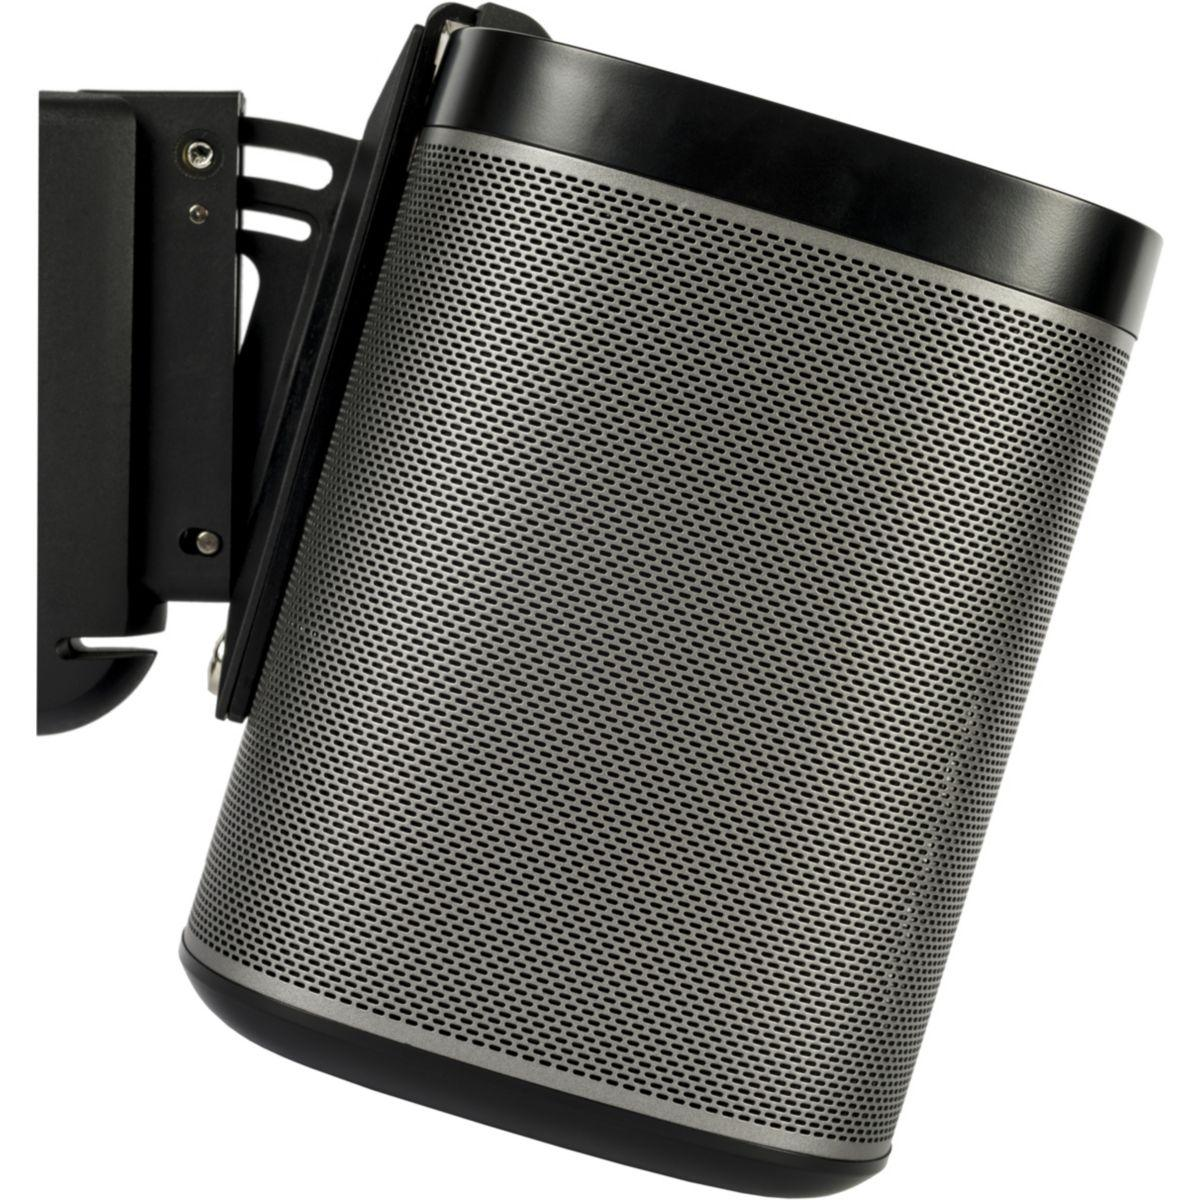 Support enceinte flexson support sonos play:1 noir - livraison offerte : code premium (photo)